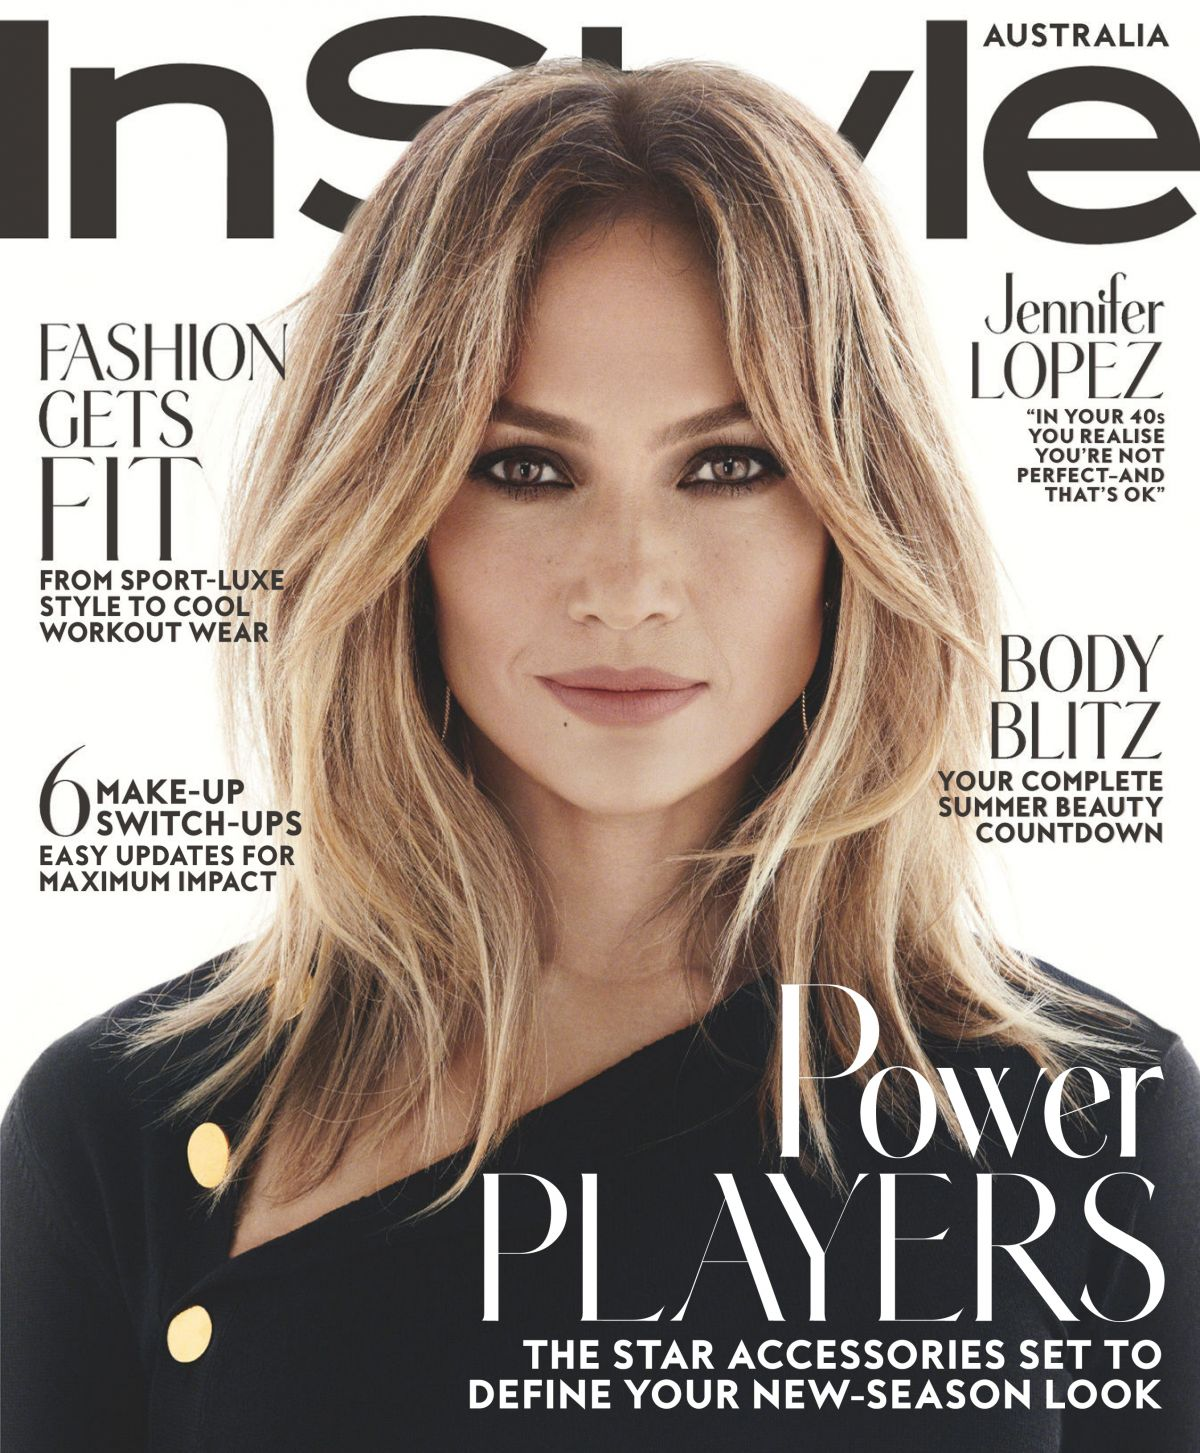 JENNIFER LOPEZ in Instyle Magazine, Australia October 2016 Issue